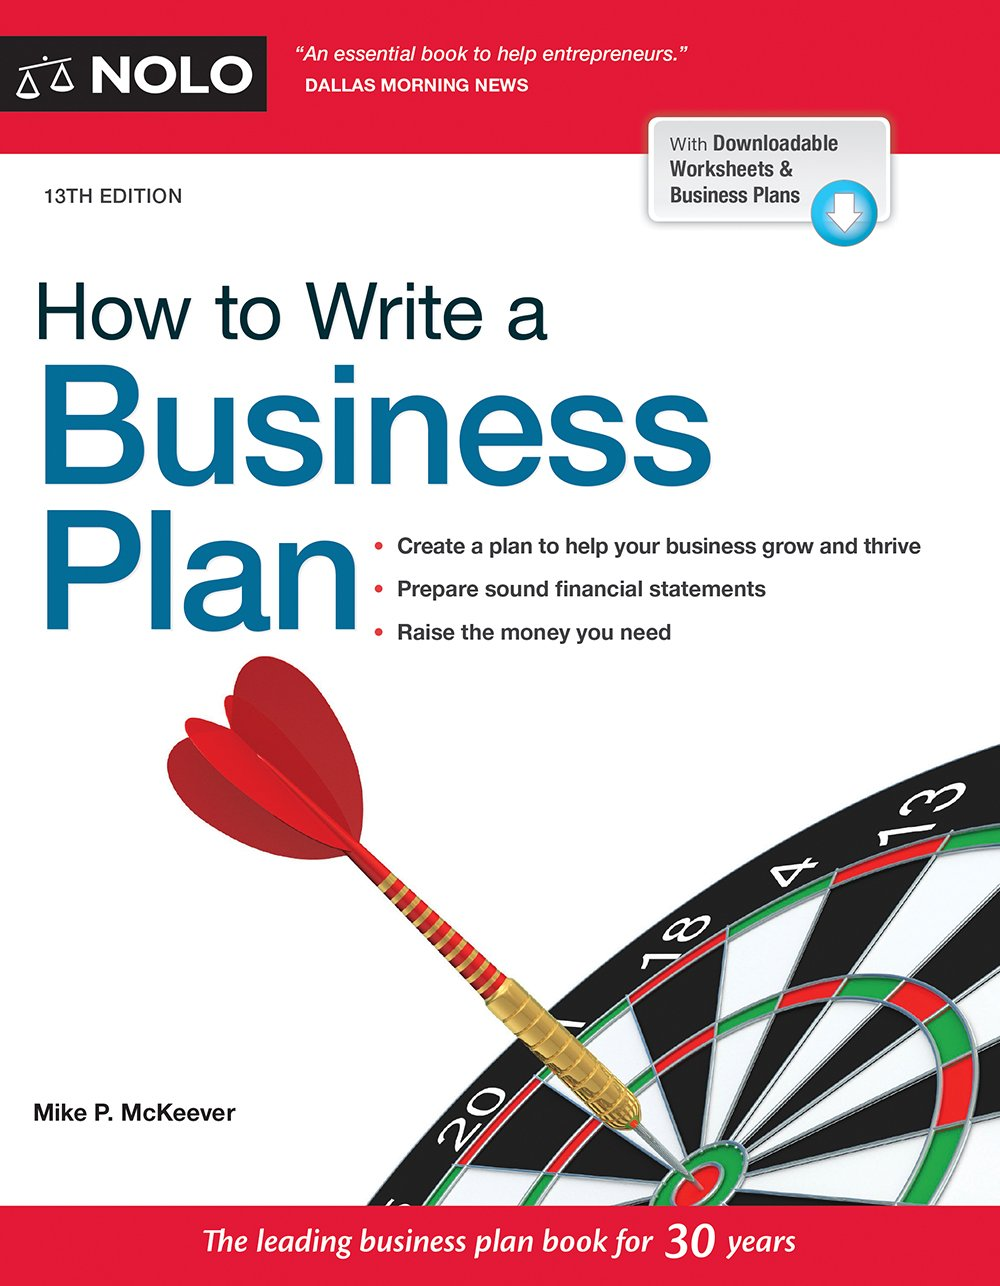 Business plan book case study writing services au